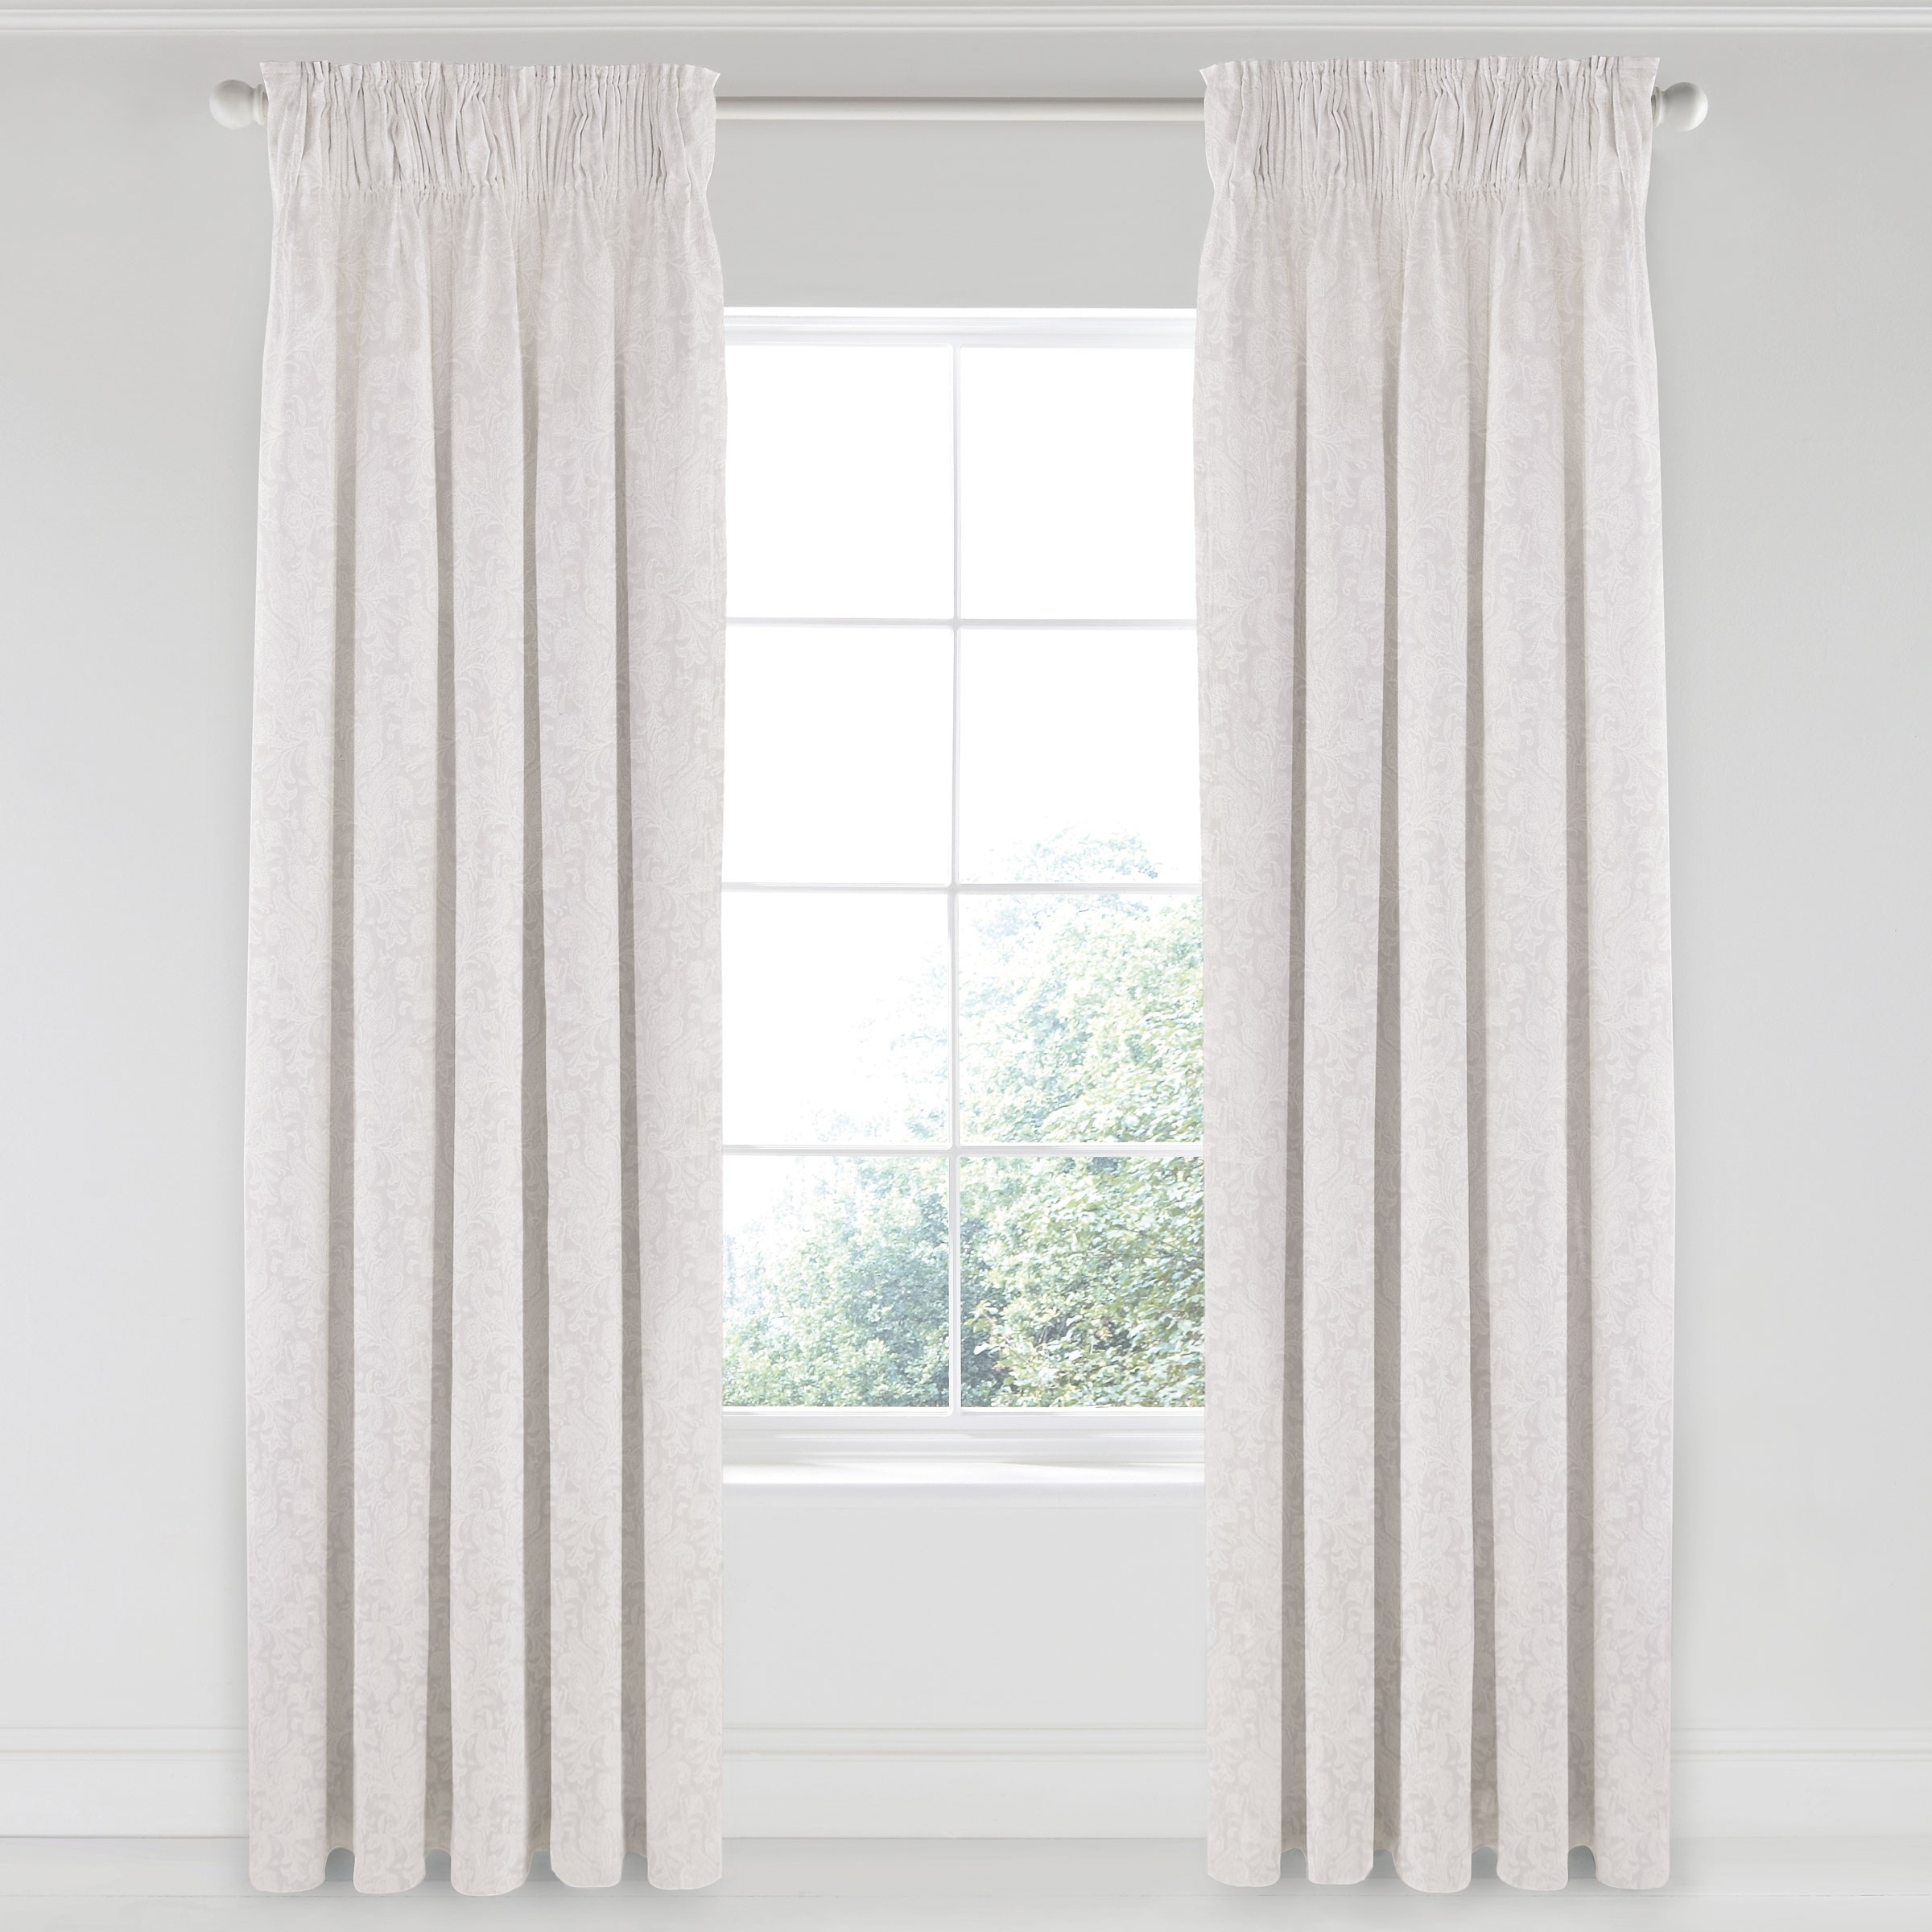 Matching White Curtains Bedding Vauville 66×72 Curtains At With Regard To Luxury White Curtains (Image 9 of 15)